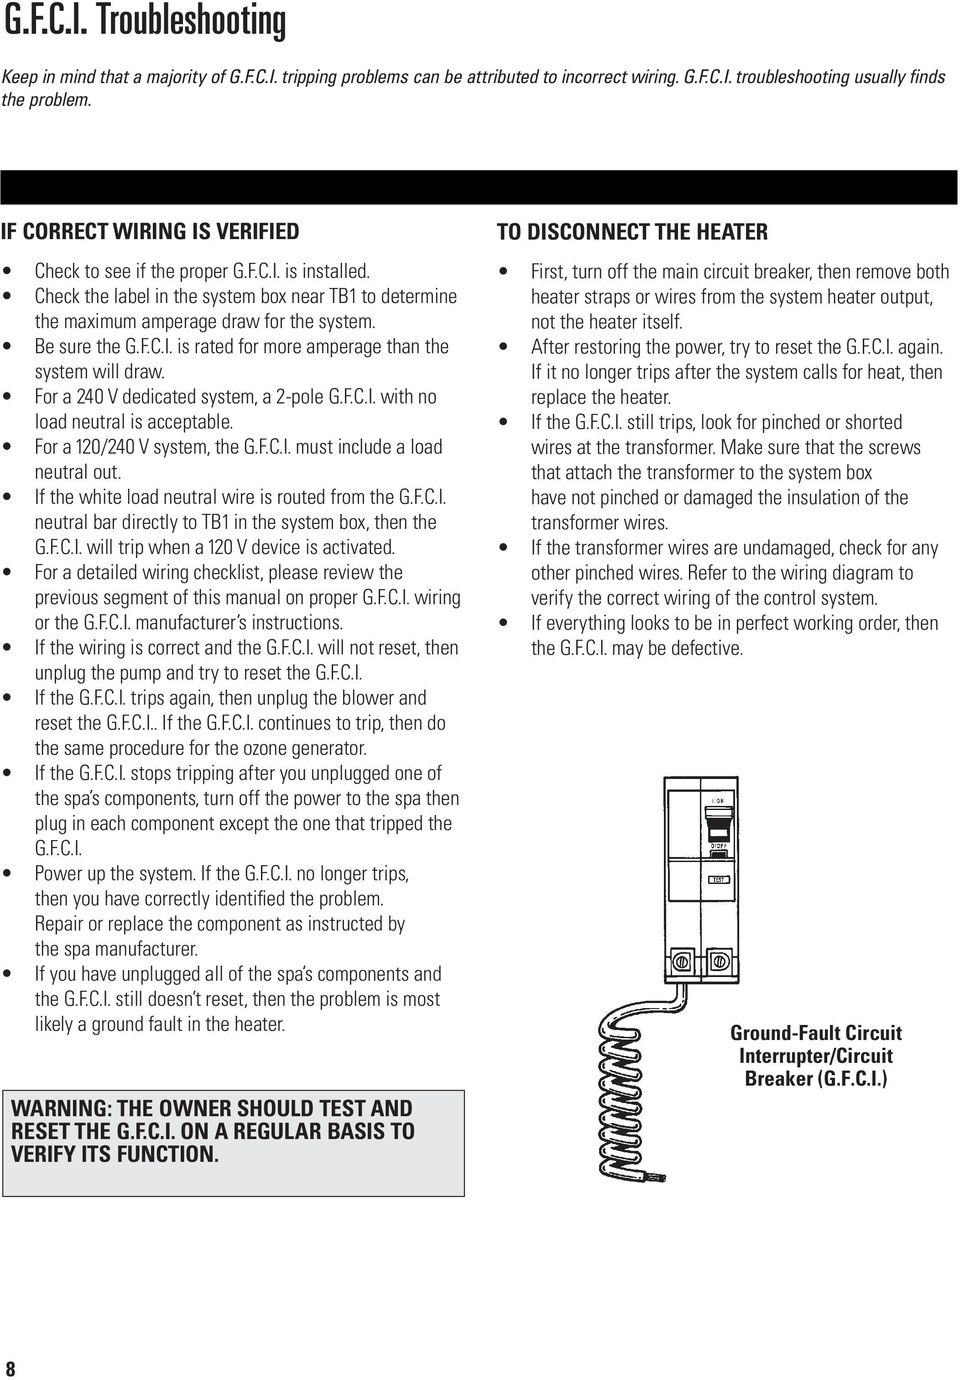 Troubleshooting & Service for EL/VS Systems. 60 Hz - PDF on